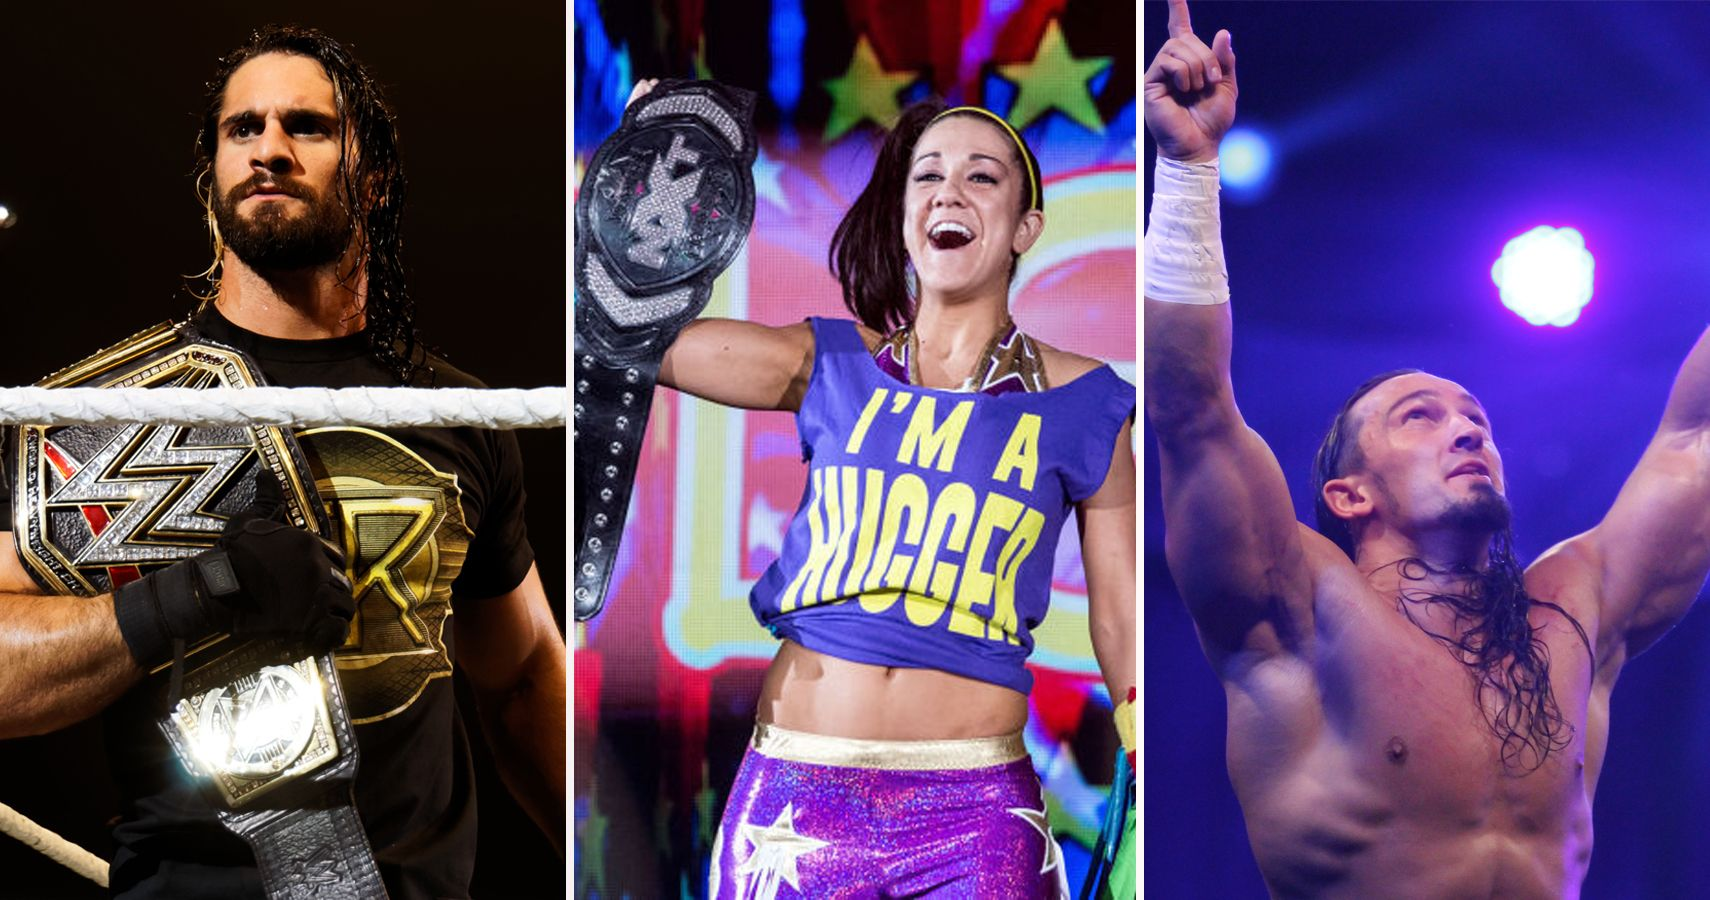 Ranking The Top 15 WWE Stars That Will Lead Us Into The New Era